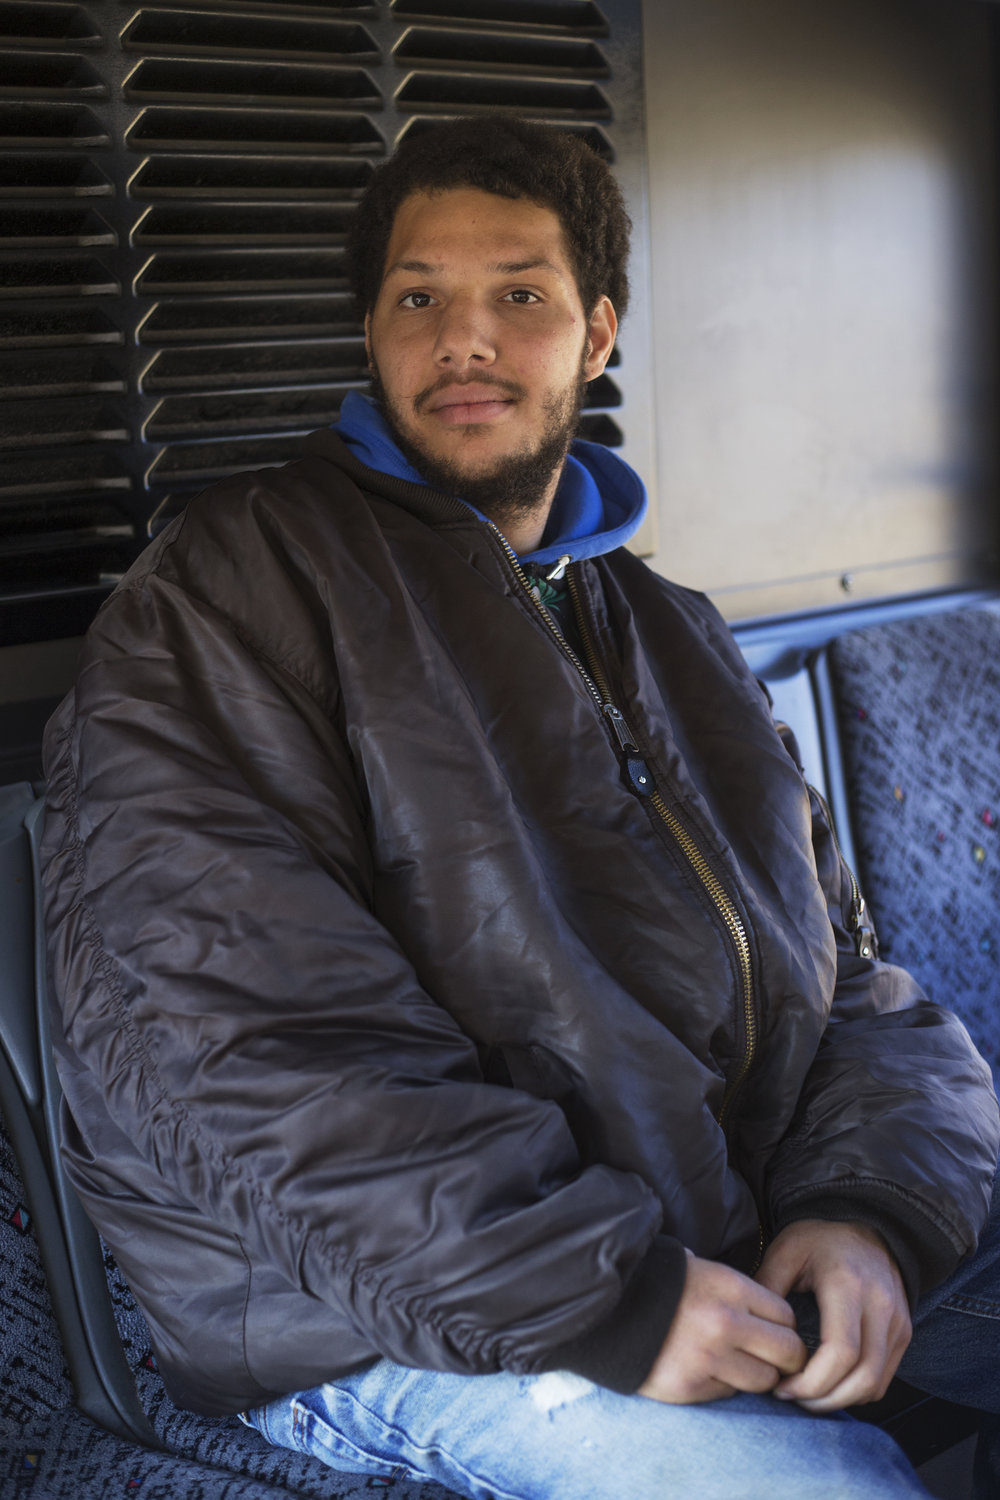 Tevante, Knoxville Area Transit, January 2018.